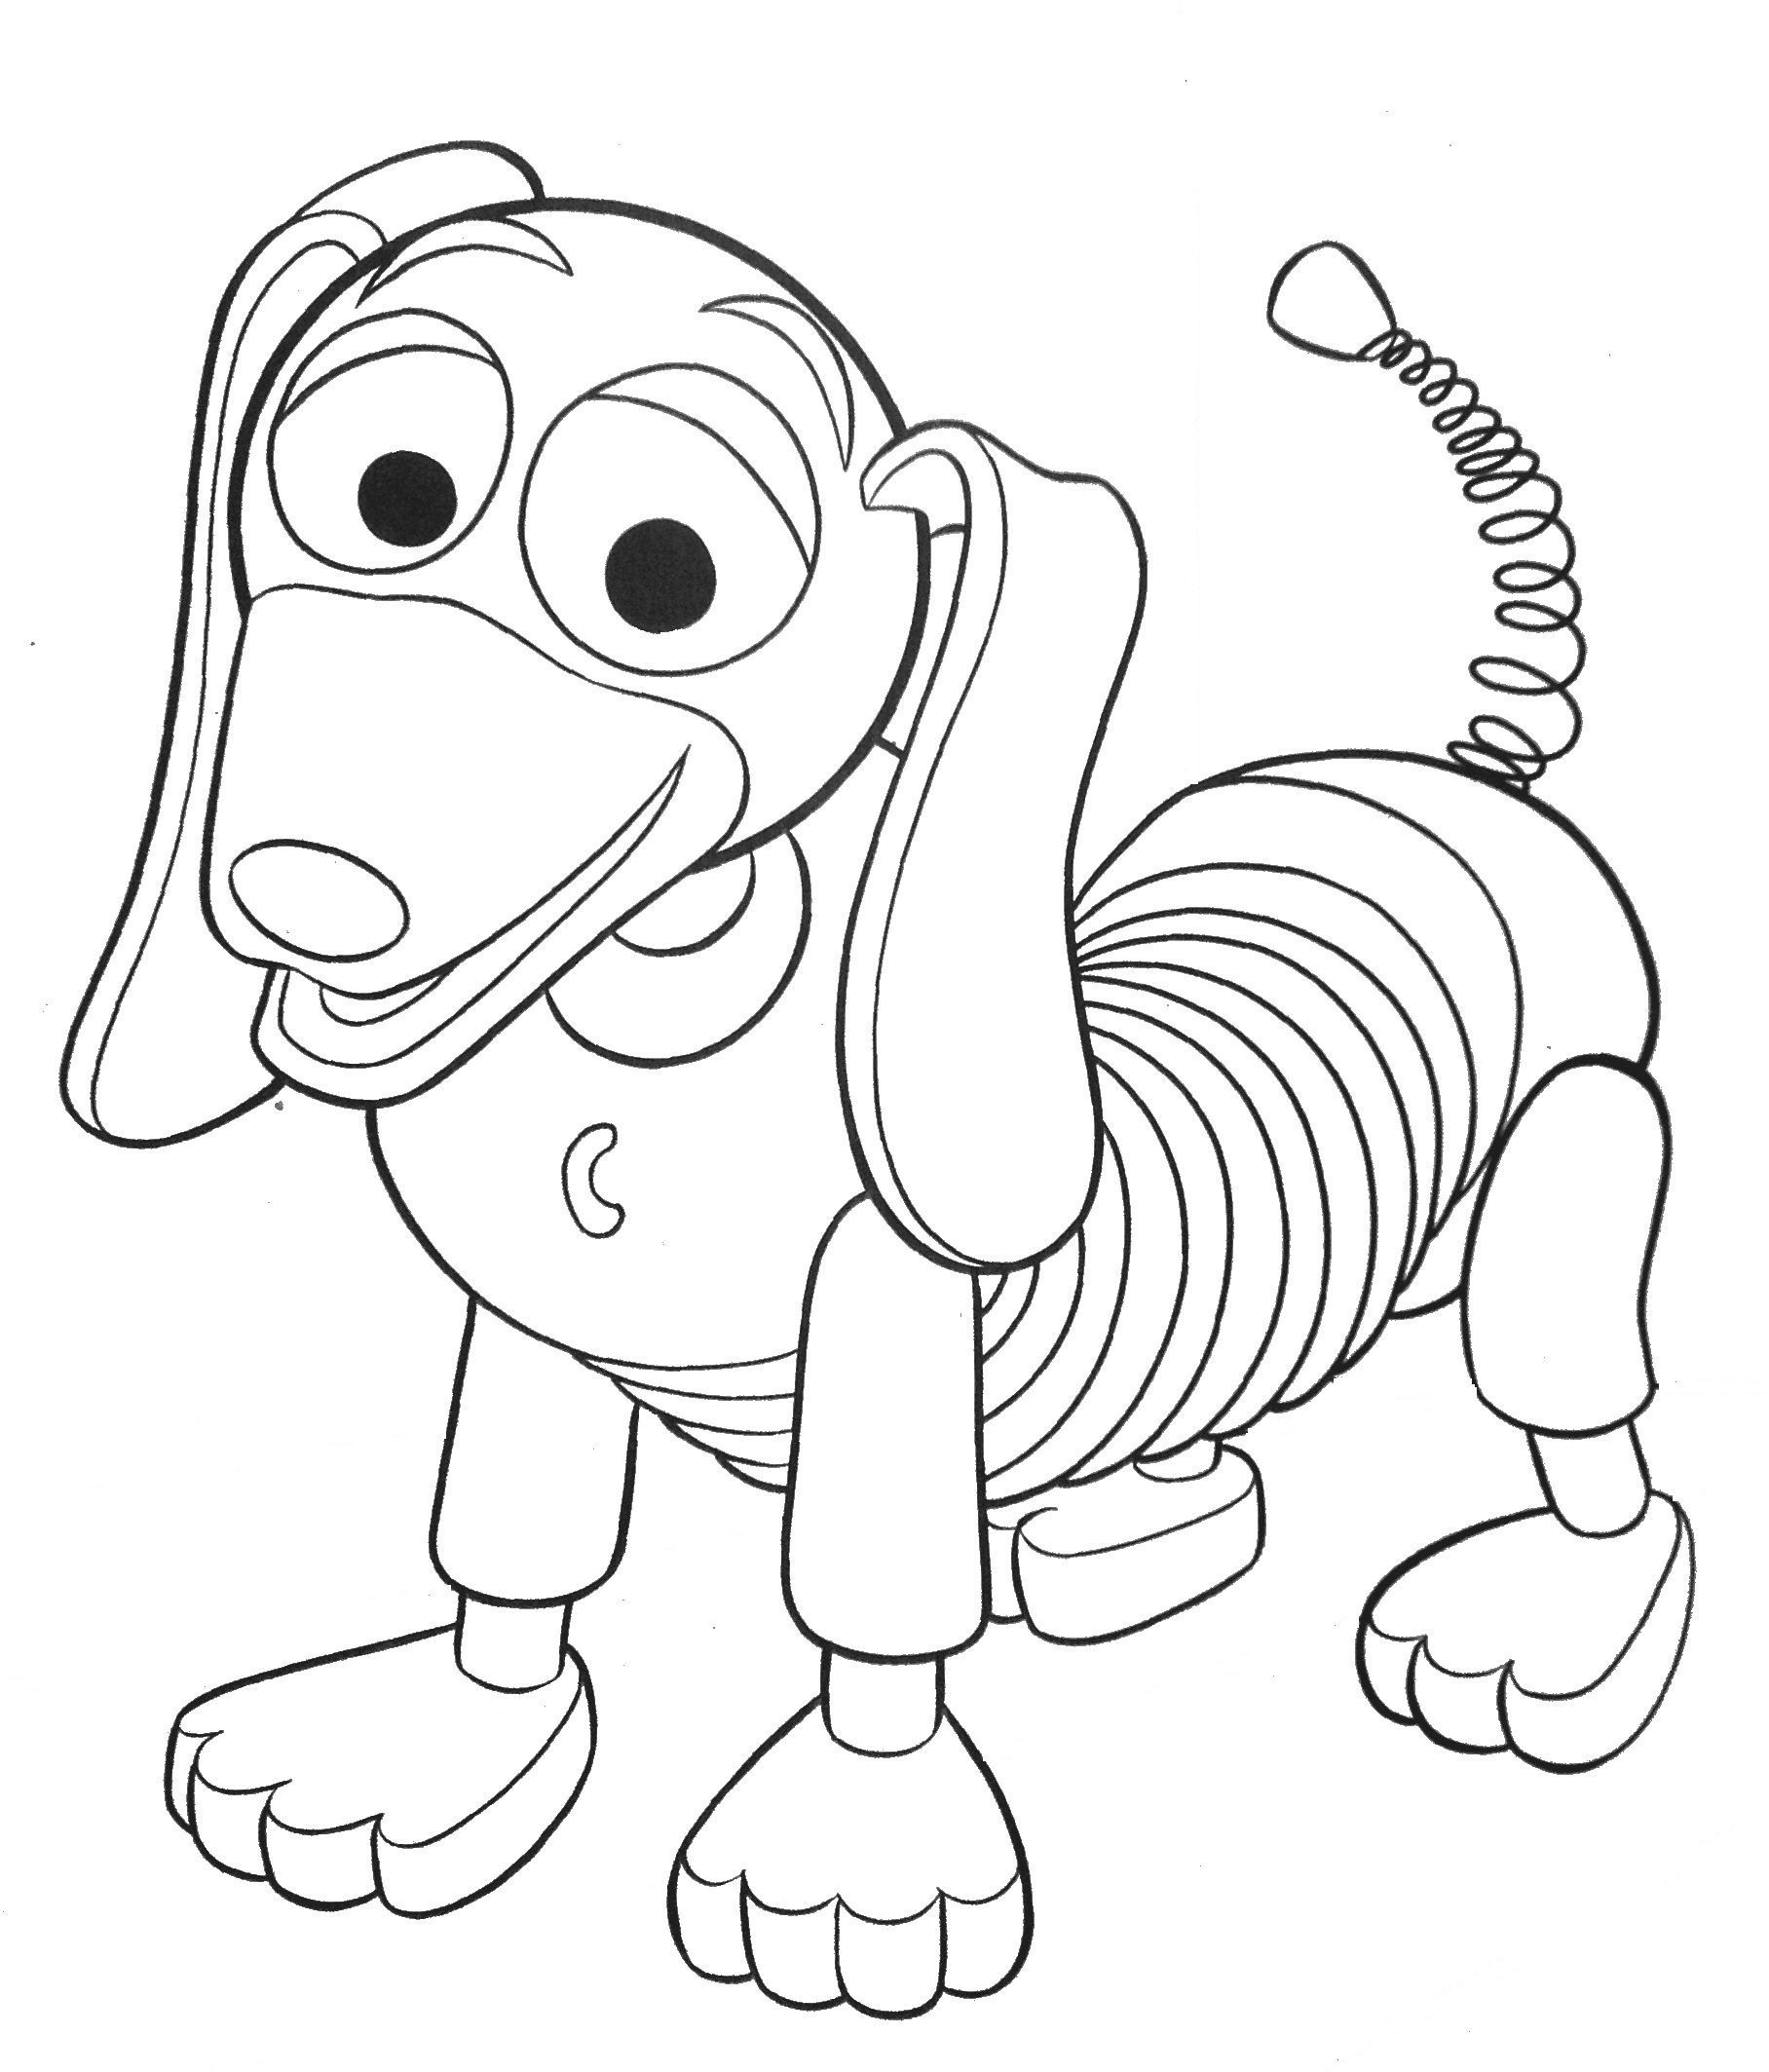 coloring pages disney toy story canalred gt plantillas para colorear de disney toy story toy coloring pages disney story